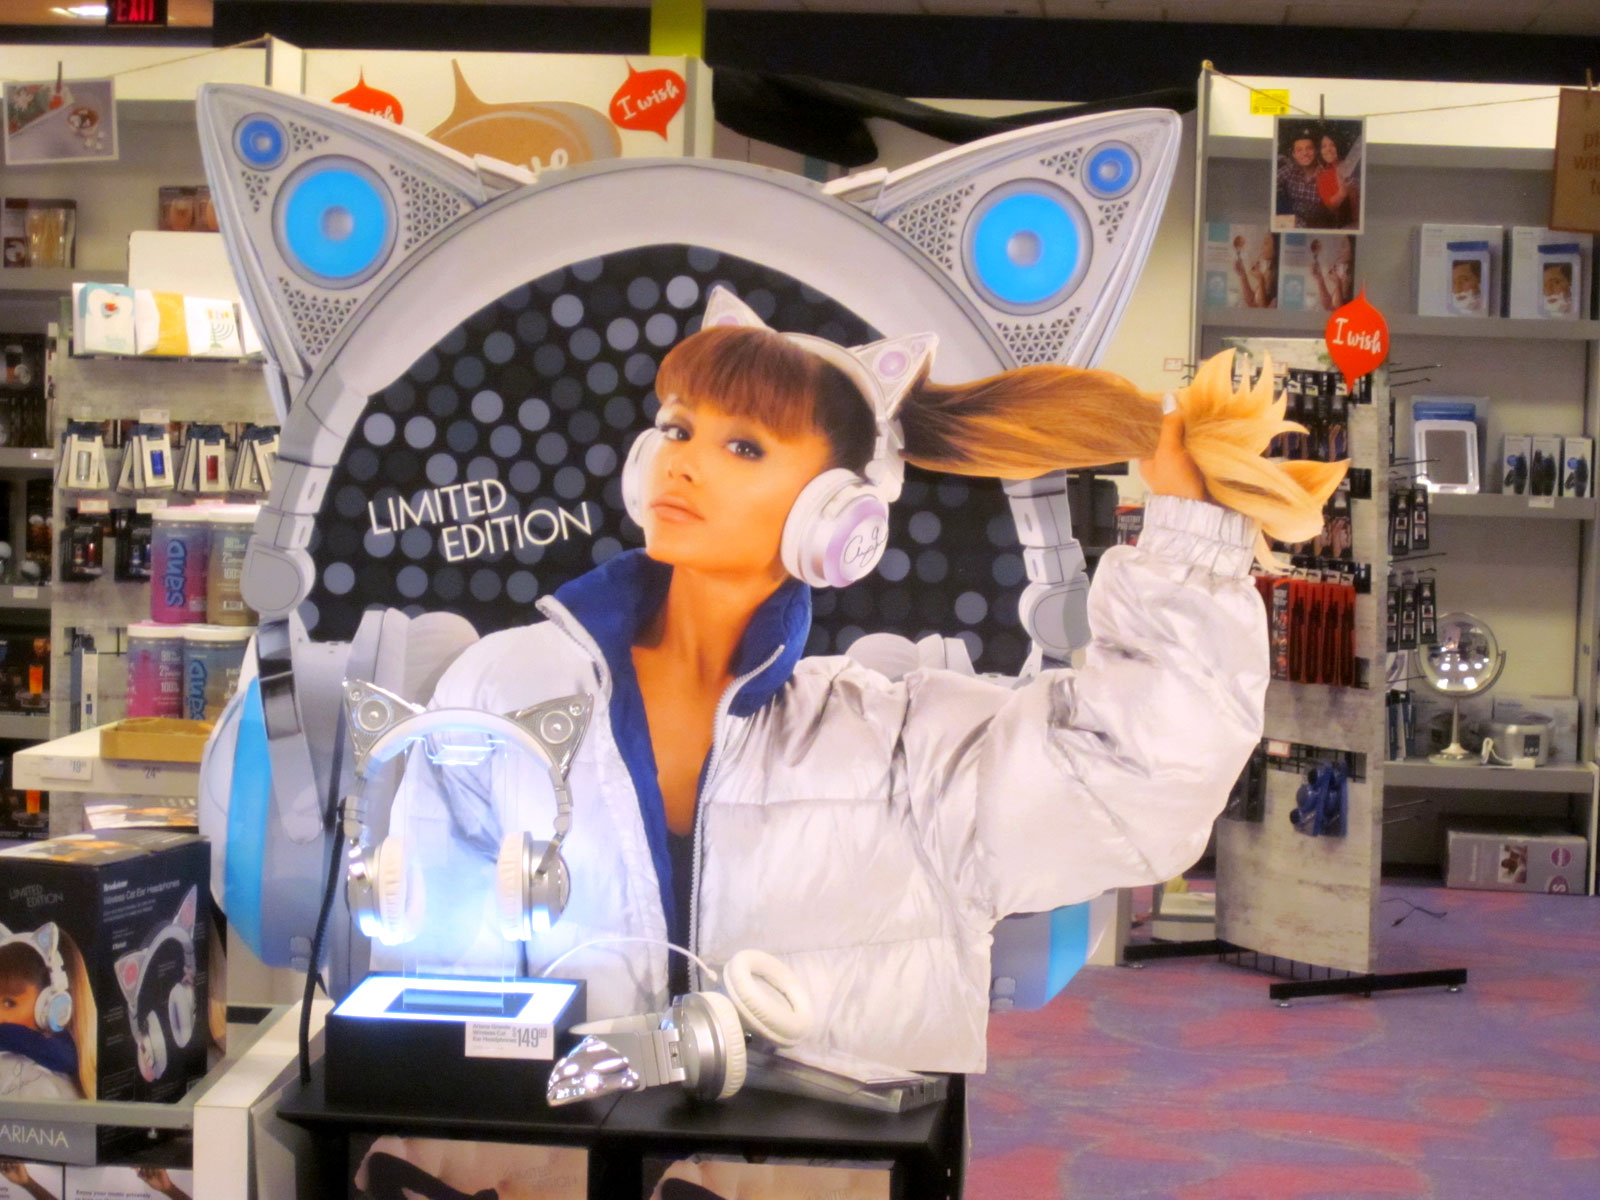 Ariana Grande headphone display